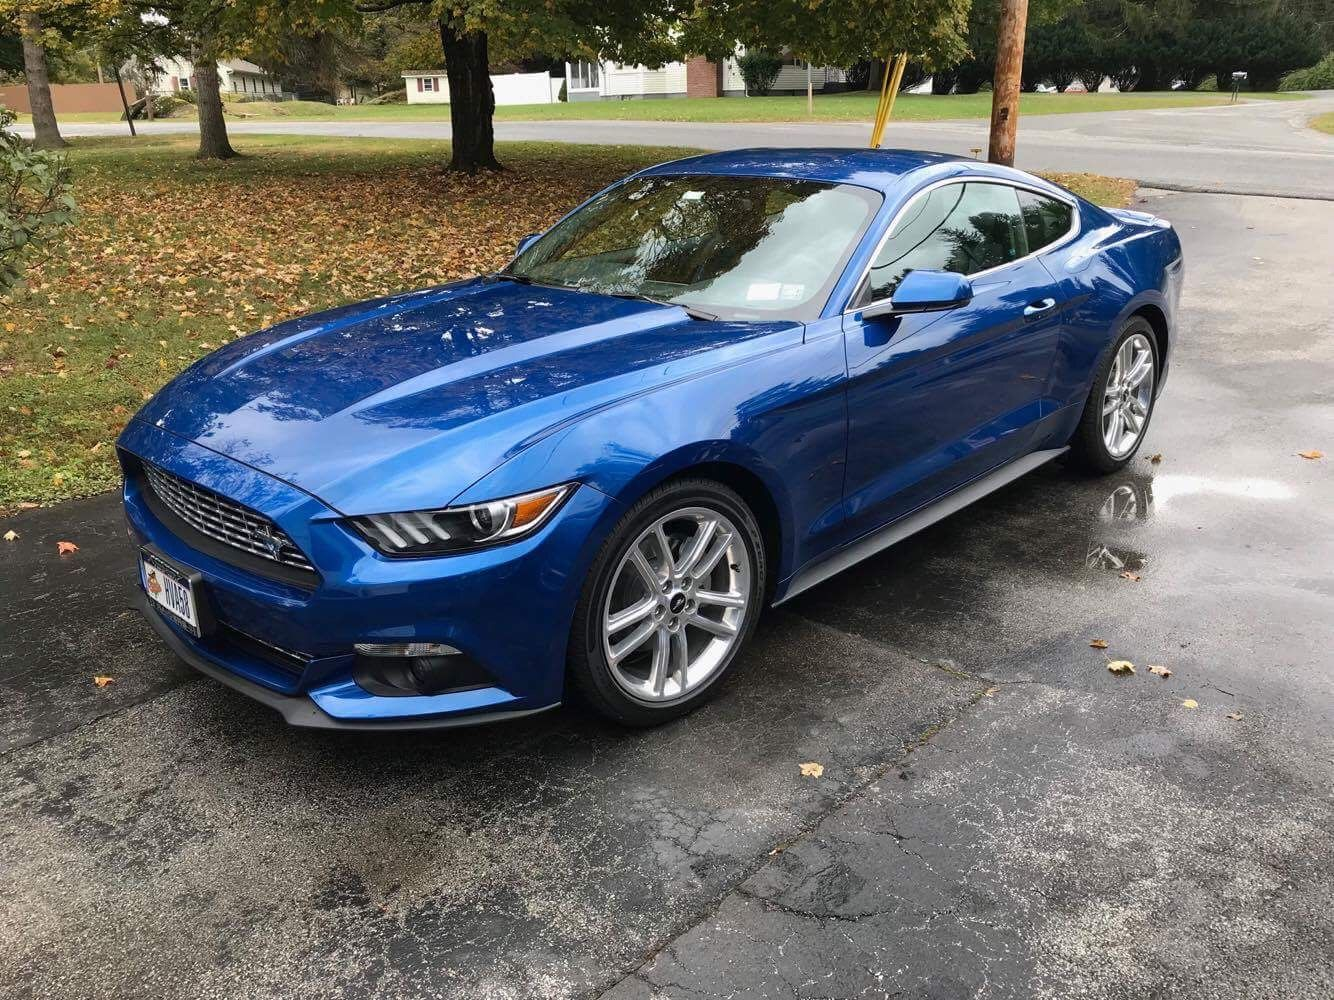 Lightning Blue Mustang >> 2017 Lightning Blue Ecoboost Premium Mustang With Pony